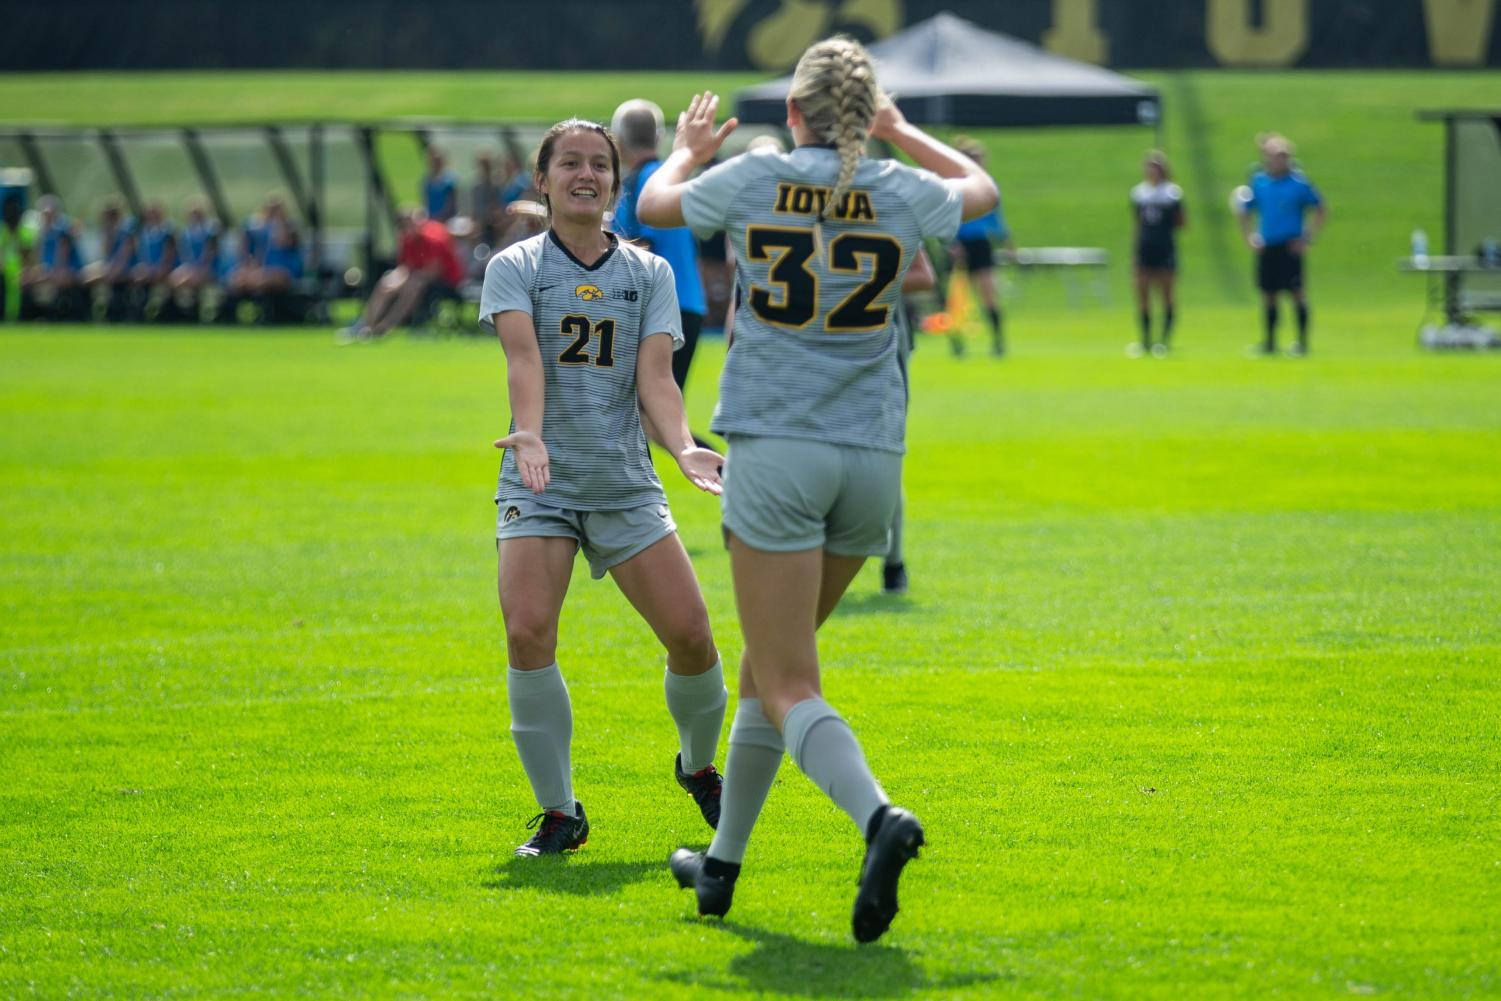 Iowa+forward+Emma+Tokuyama+%2821%29+celebrates+with+teammate+Gianna+Gourley+%2832%29+during+Iowa%27s+match+against+Illinois+State+on+Sunday%2C+September+1%2C+2019.+The+Hawkeyes+defeated+the+Red+Birds+4-3.